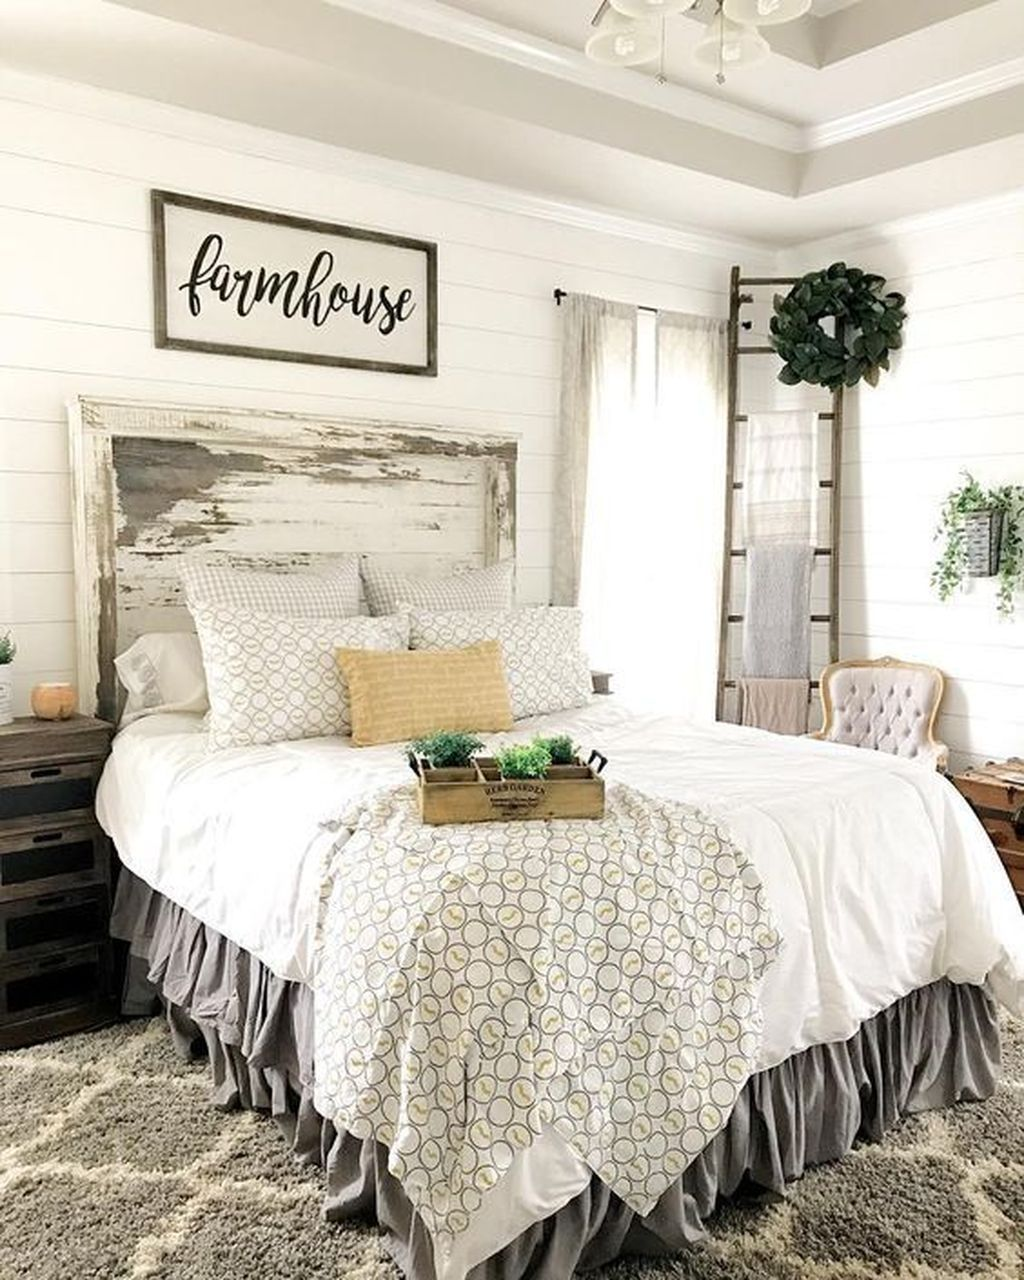 43 Romantic Rustic Bedroom Ideas Roundecor Farmhouse Style Master Bedroom Rustic Master Bedroom Master Bedrooms Decor